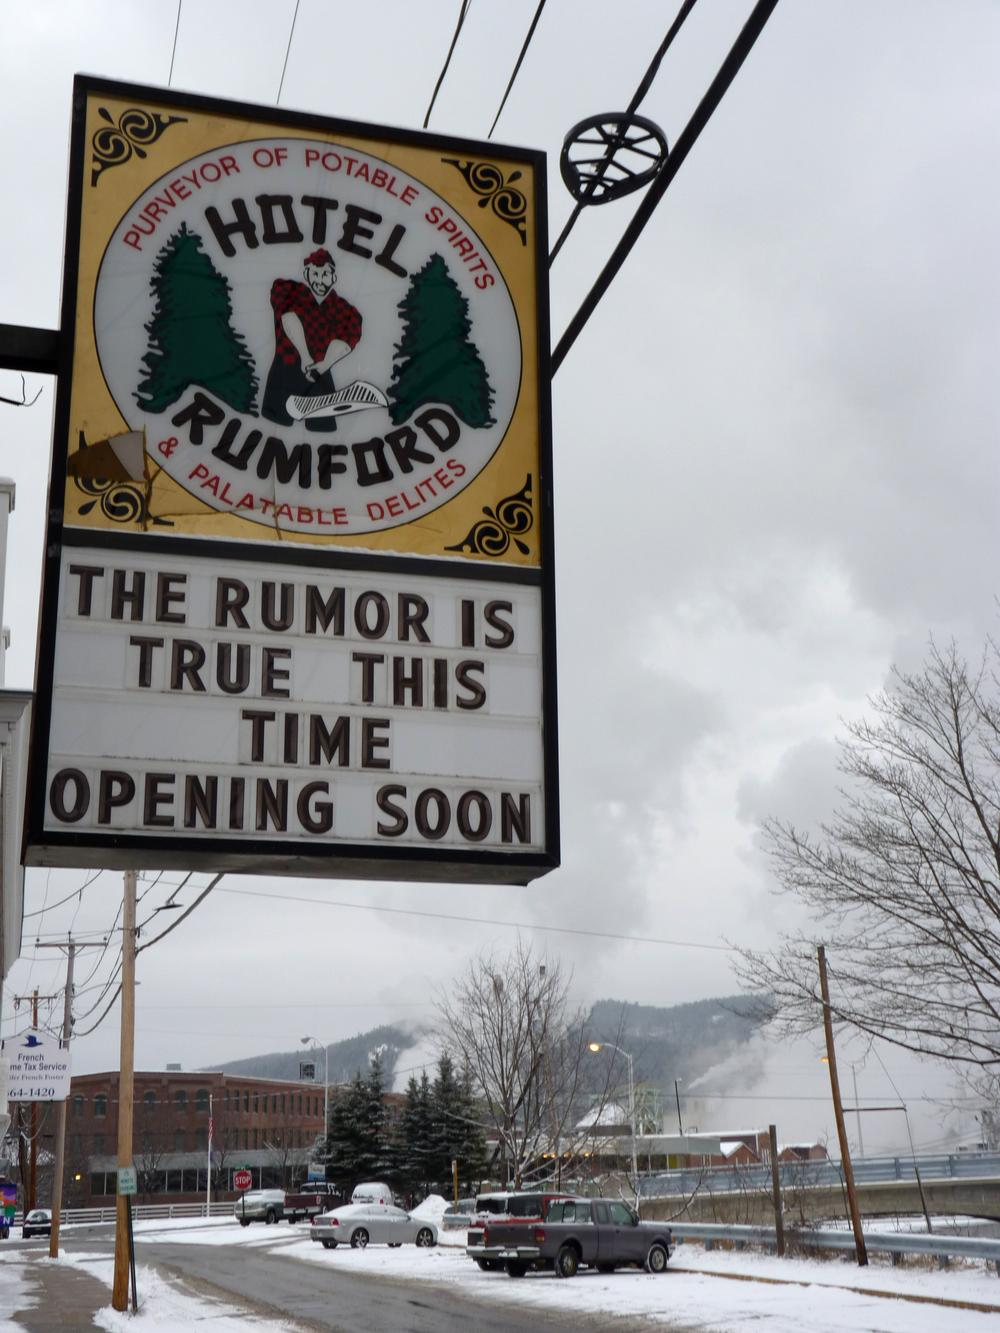 This downtown hotel hopes to re-open next year to take advantage of the business that races bring to town. (Sam Evans-Brown)